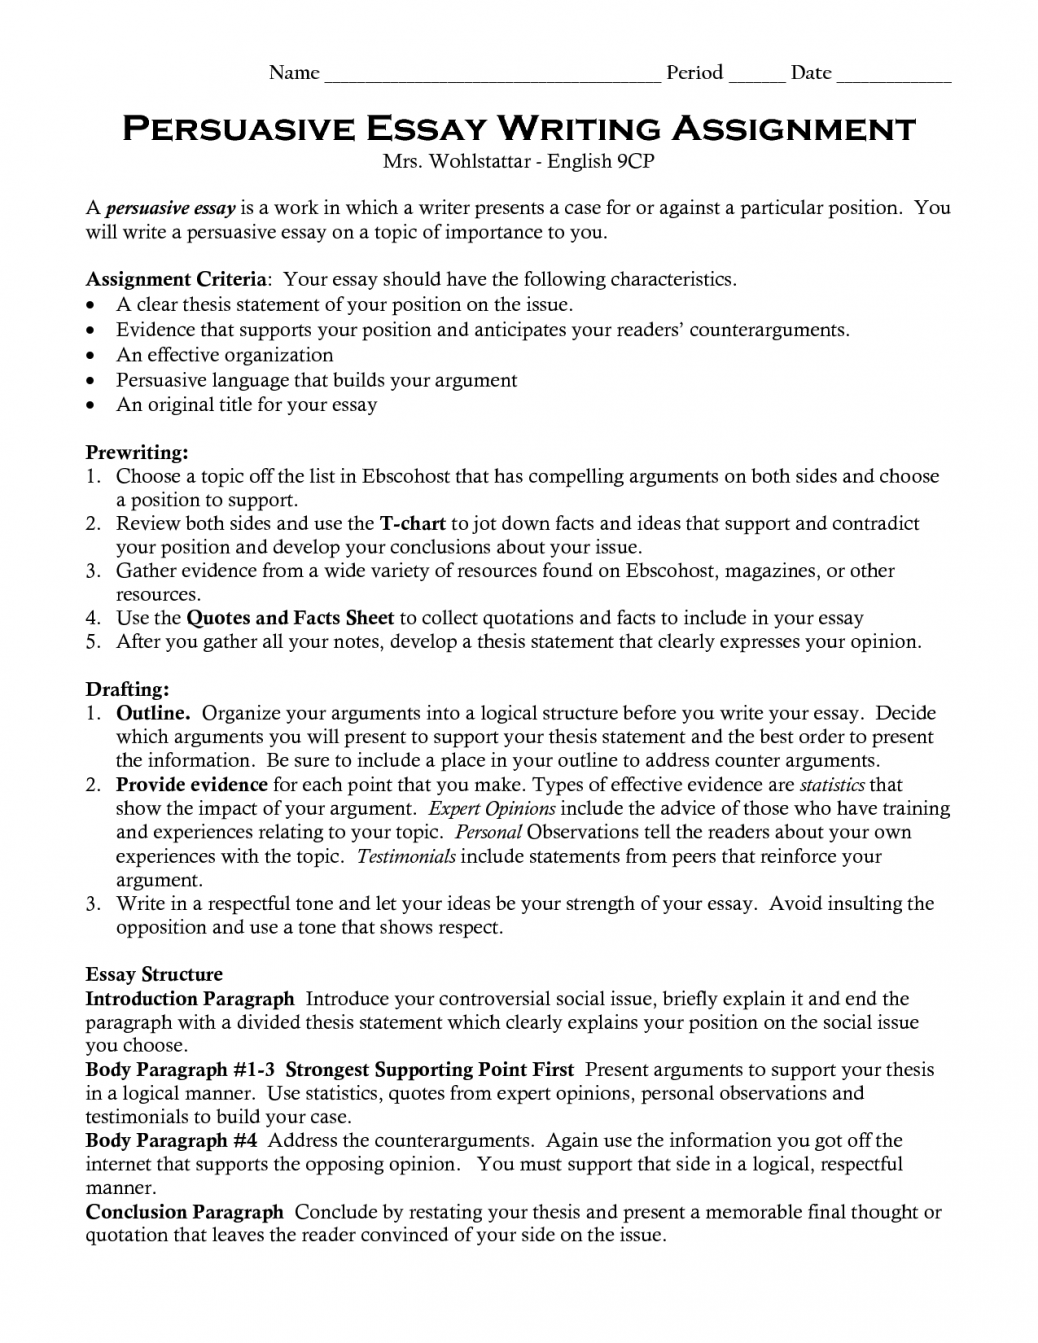 008 Thesis Statement On Bullying Template V0cthfrtay Persuasive Examples Argumentative Example Tremendous 1038x1343 Research Best Paper Full